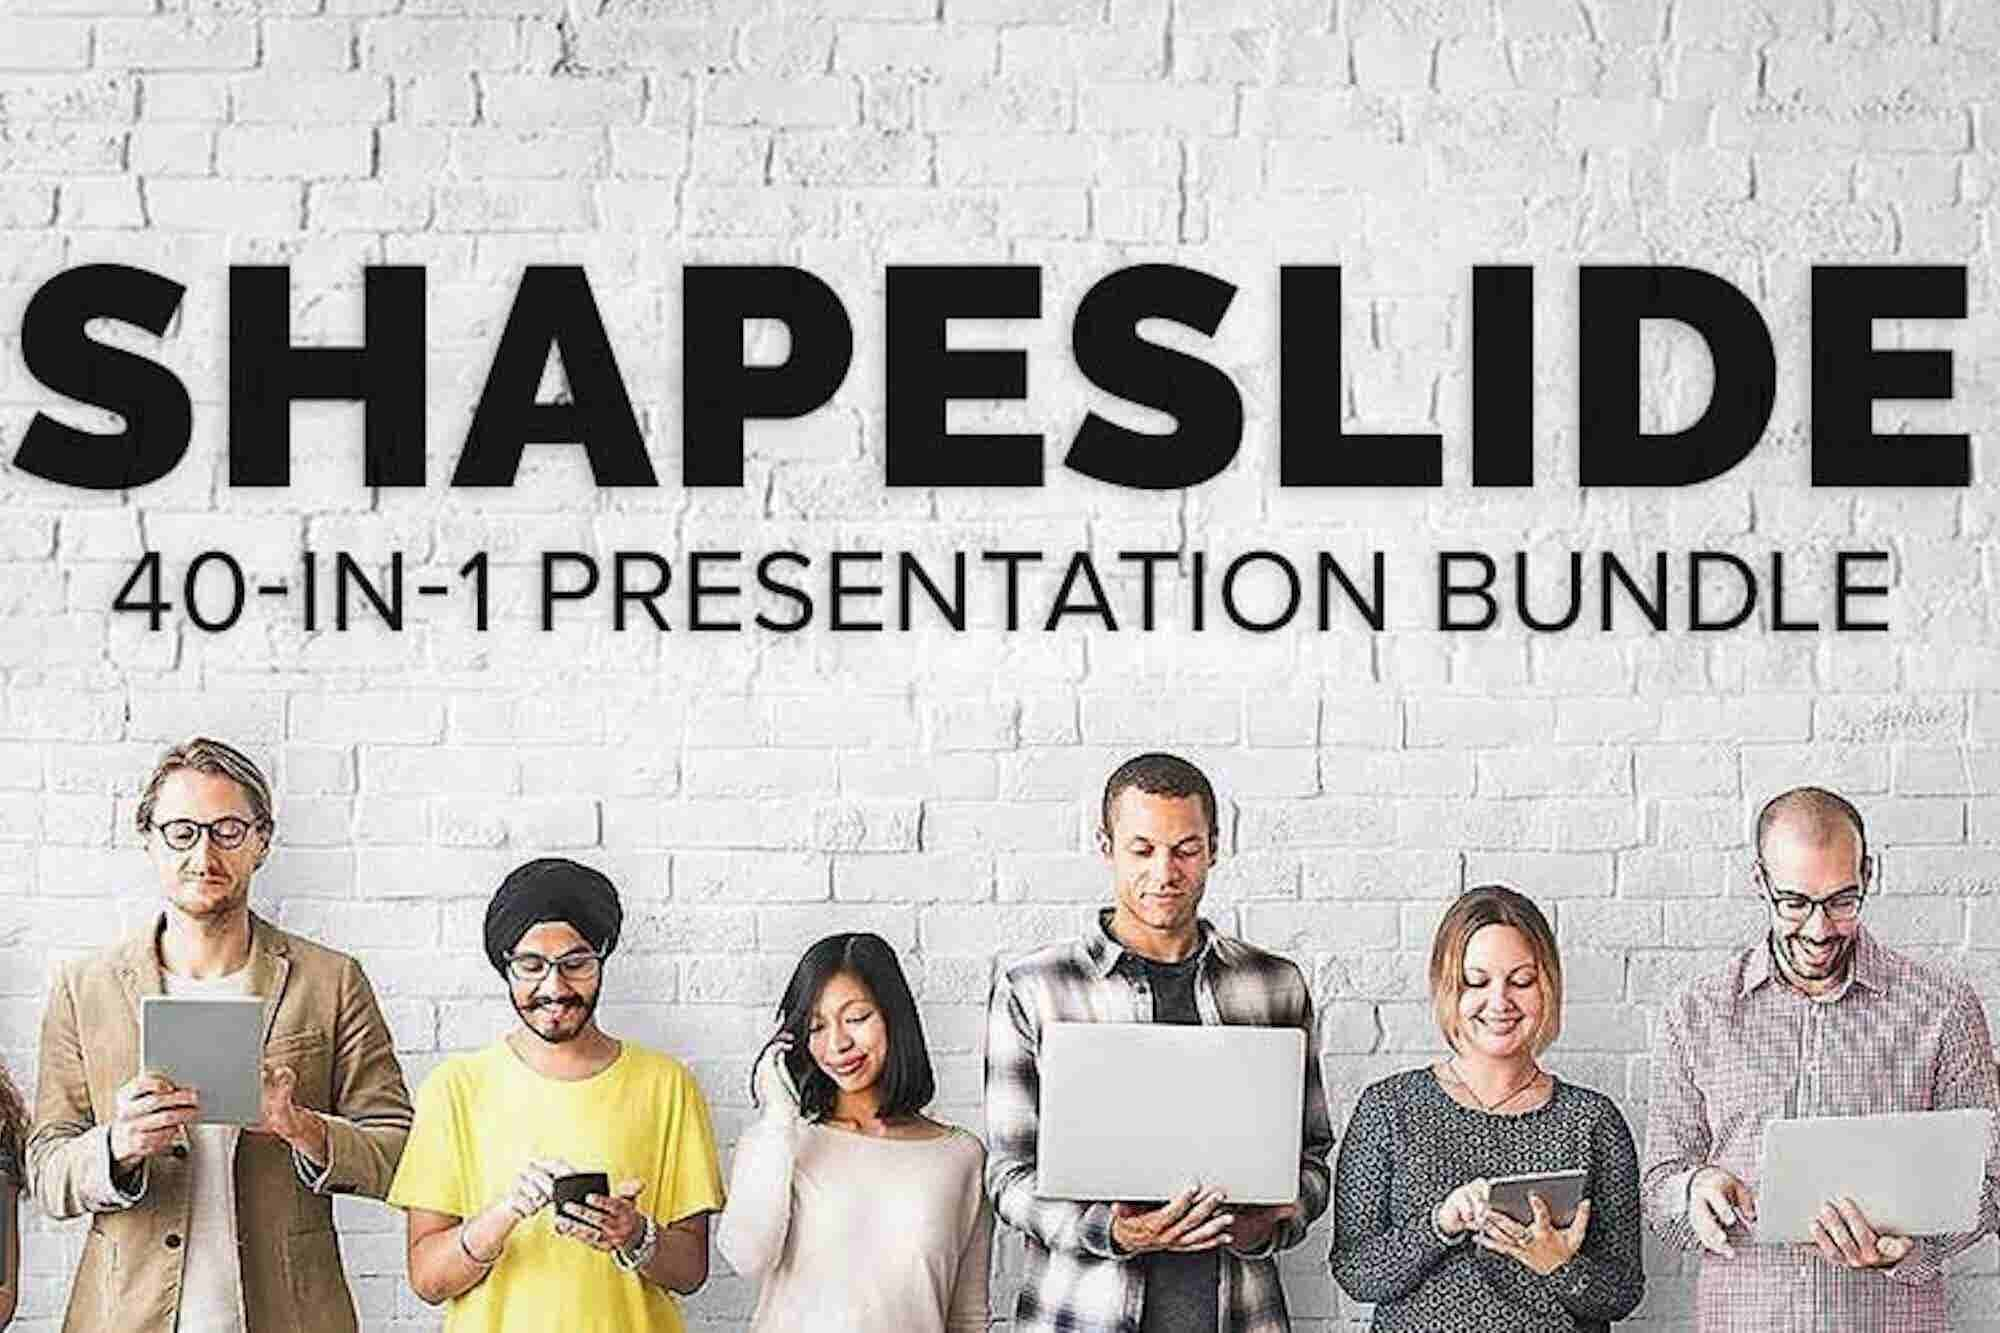 These Presentation Templates Can Help You Make a Better Impression